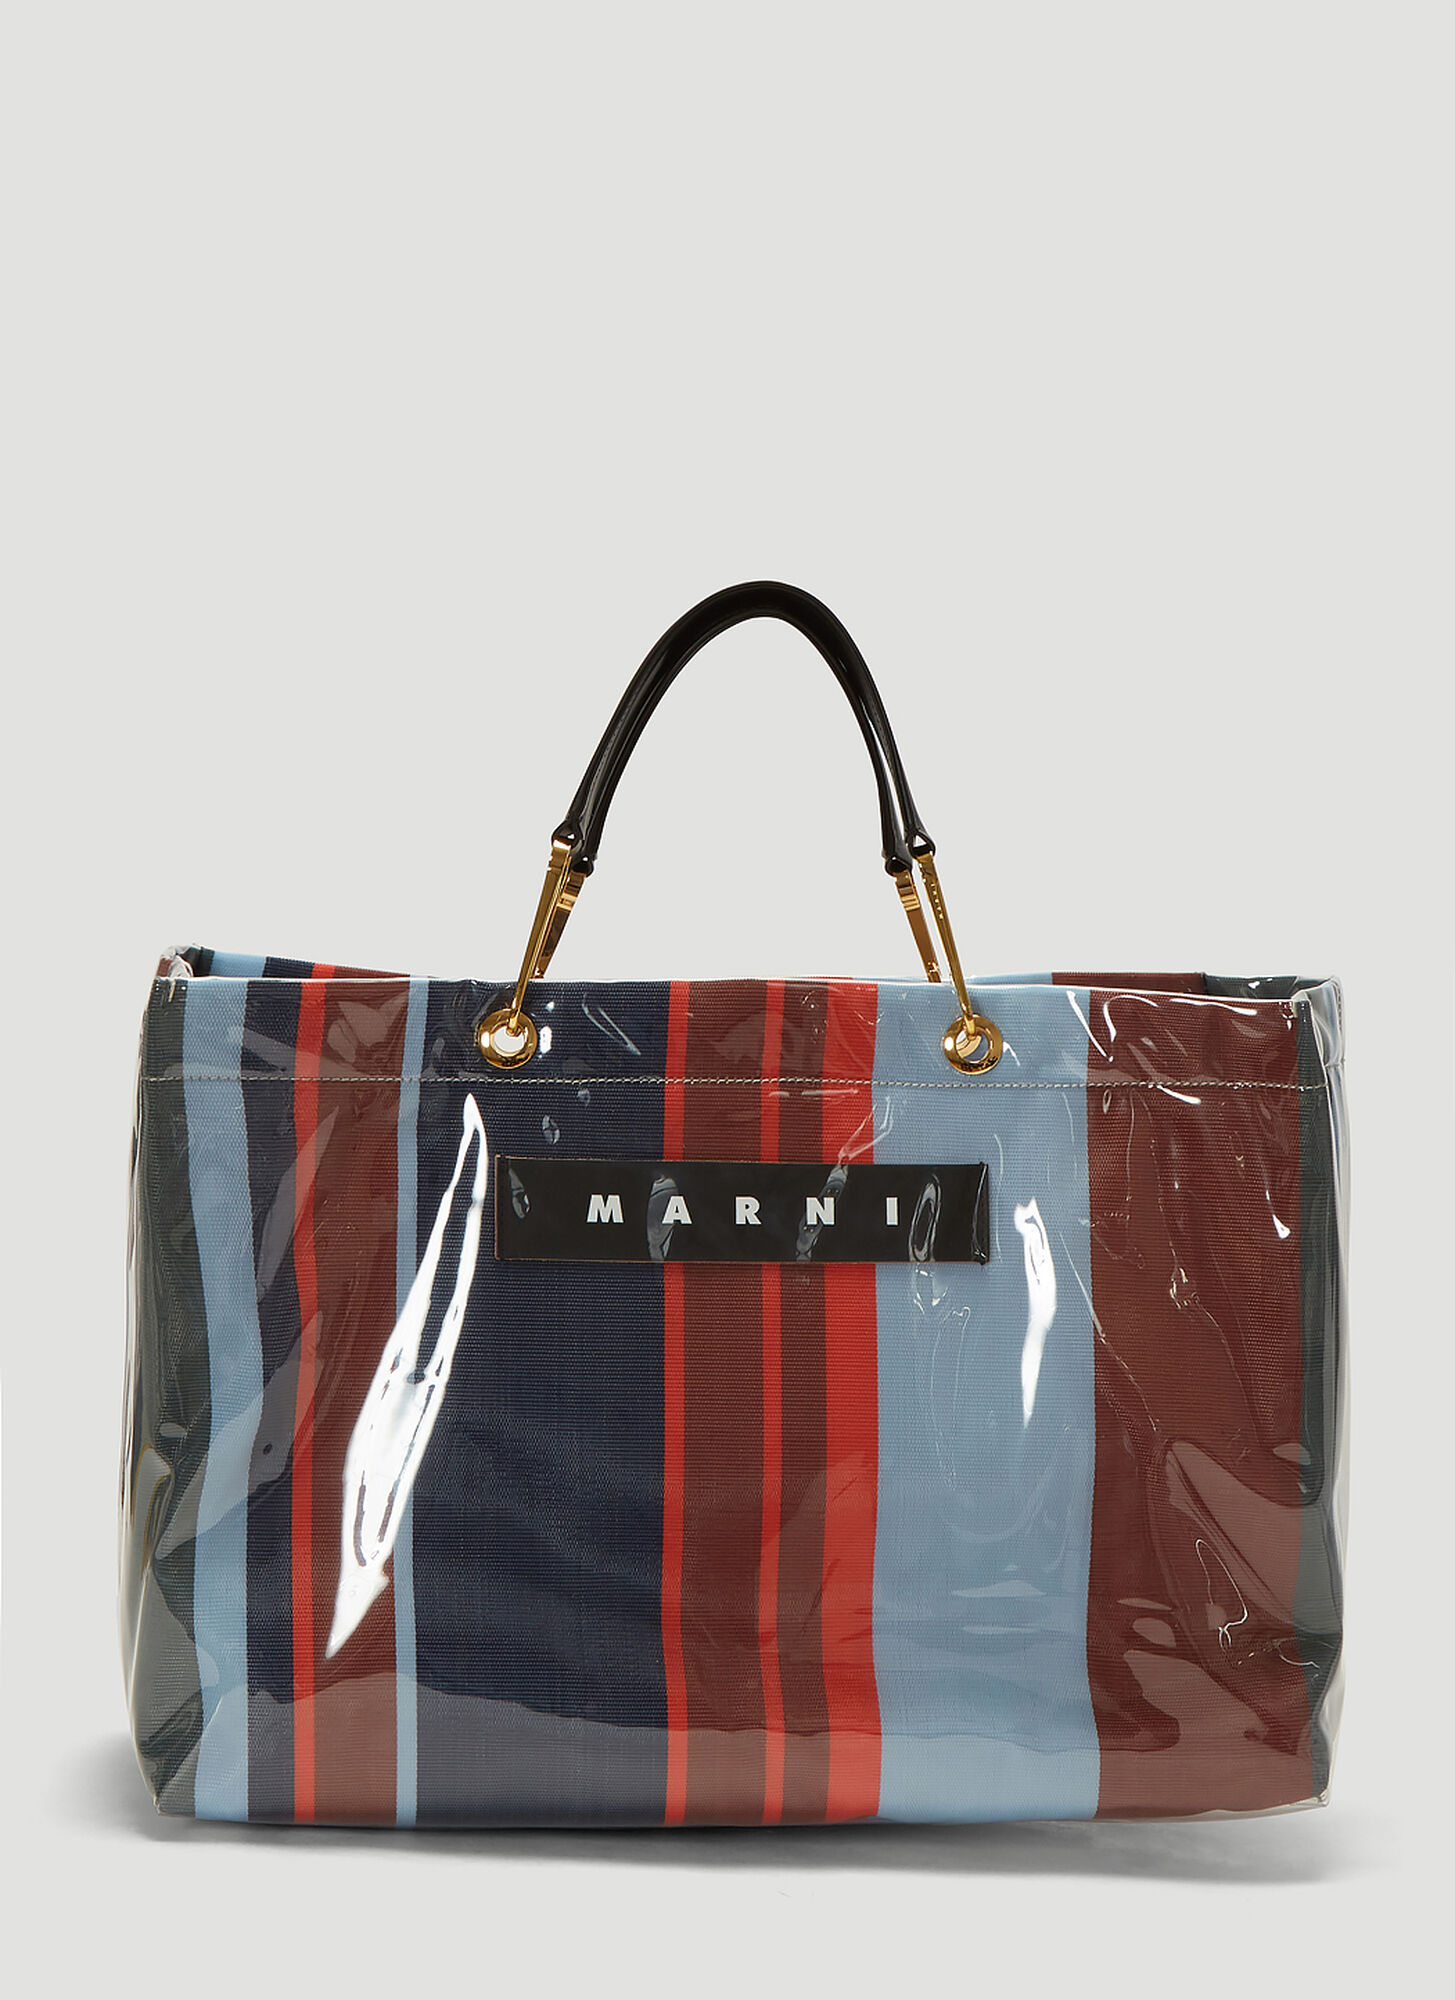 Marni Glossy Grip Large Tote Bag in Blue